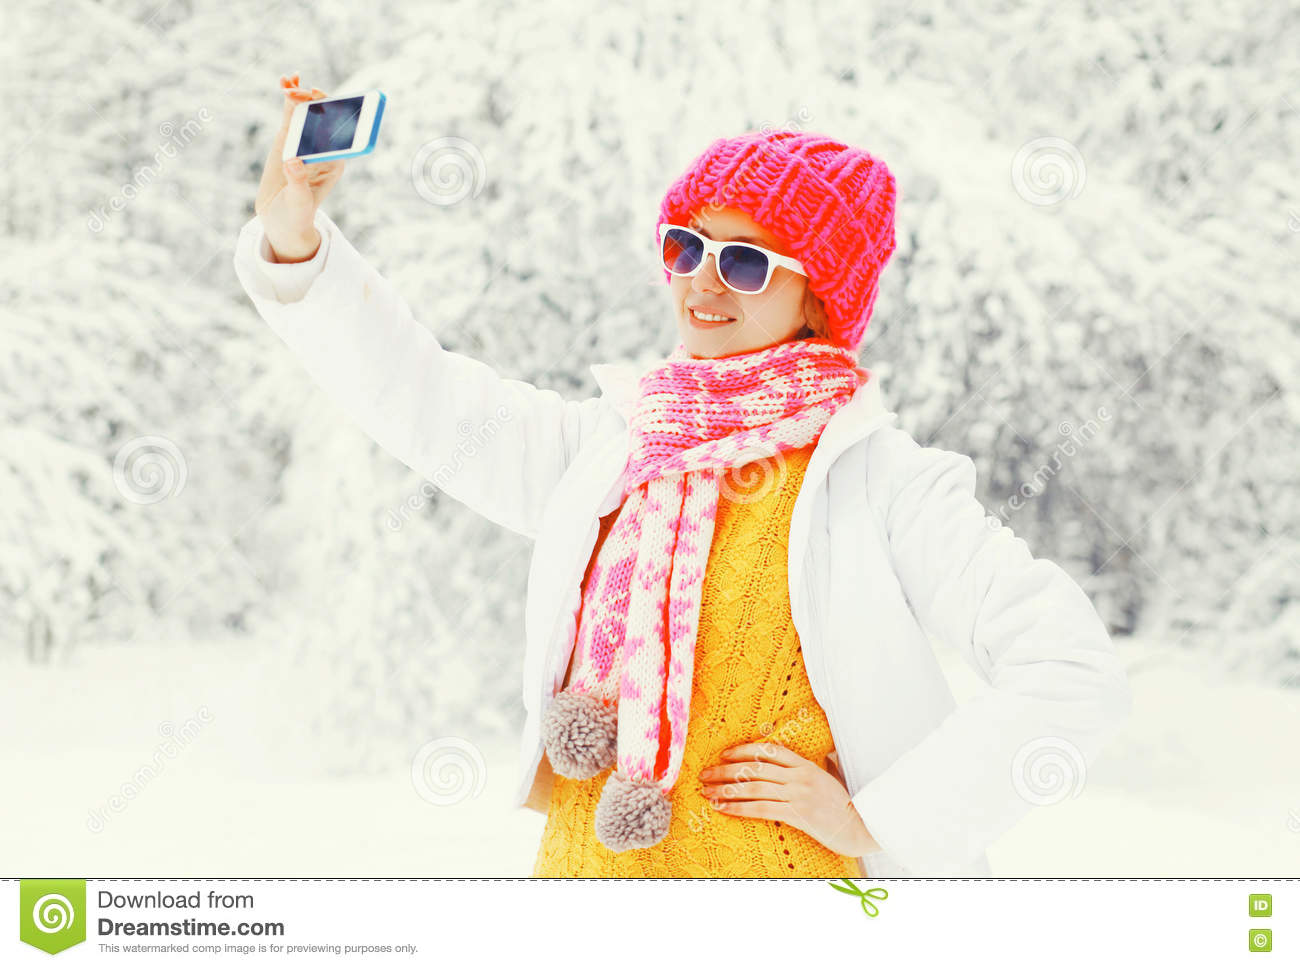 Fashion winter woman taking picture self portrait on smartphone over snowy trees wearing a colorful knitted hat scarf